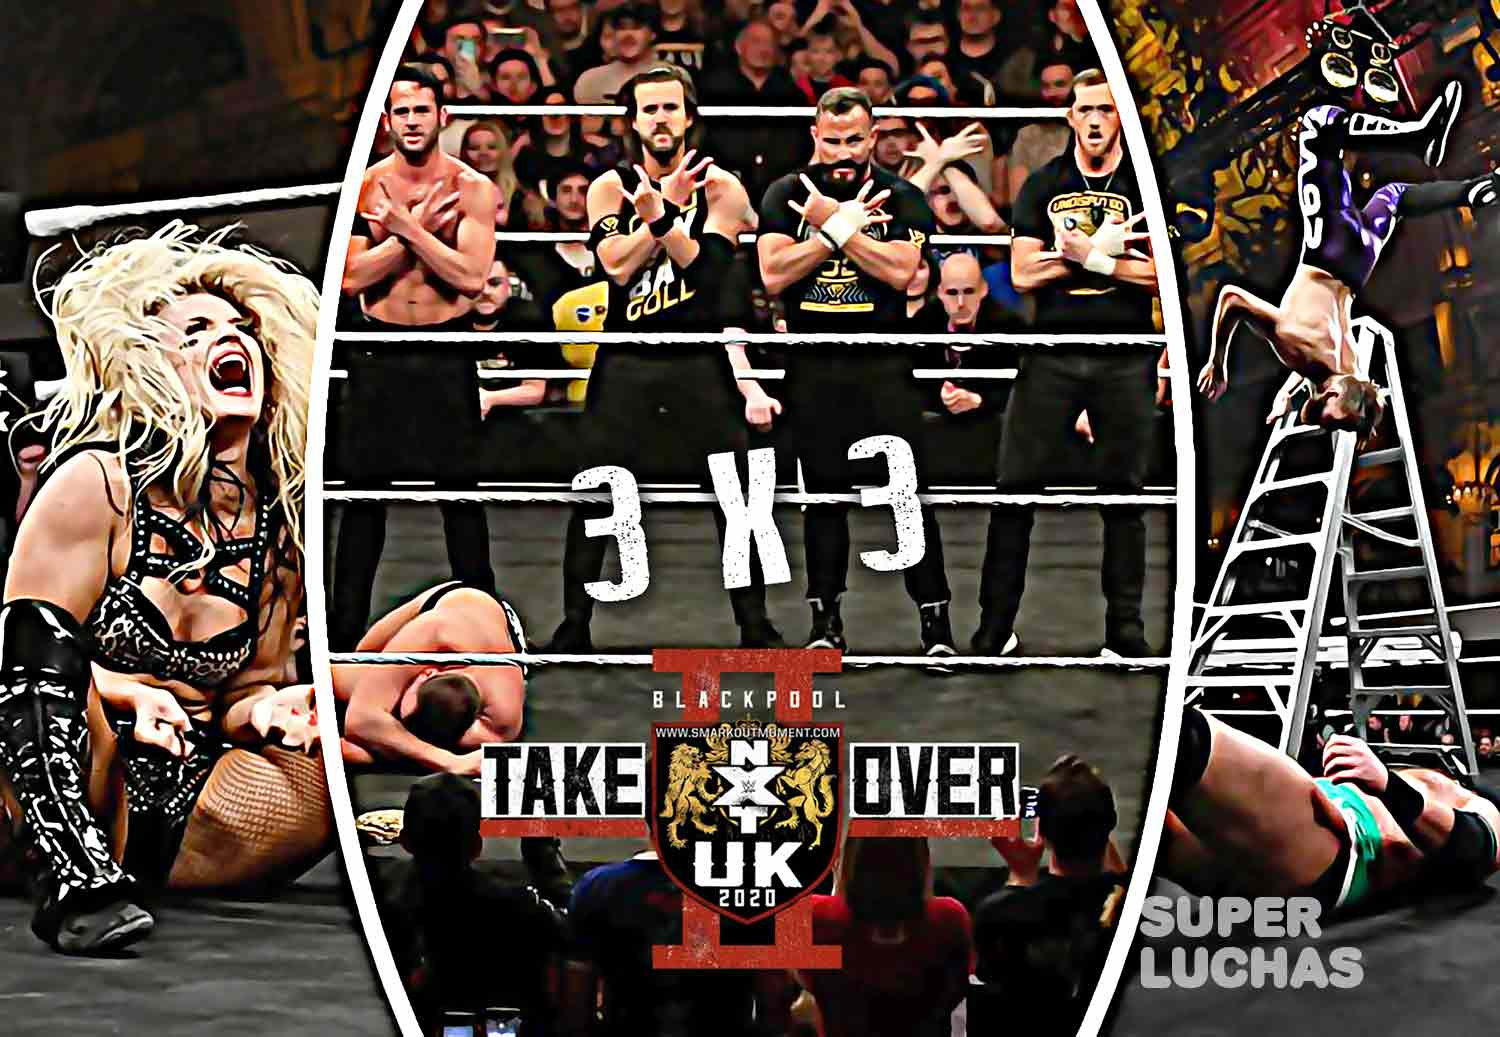 3x3 NXT Takeover Blackpool II